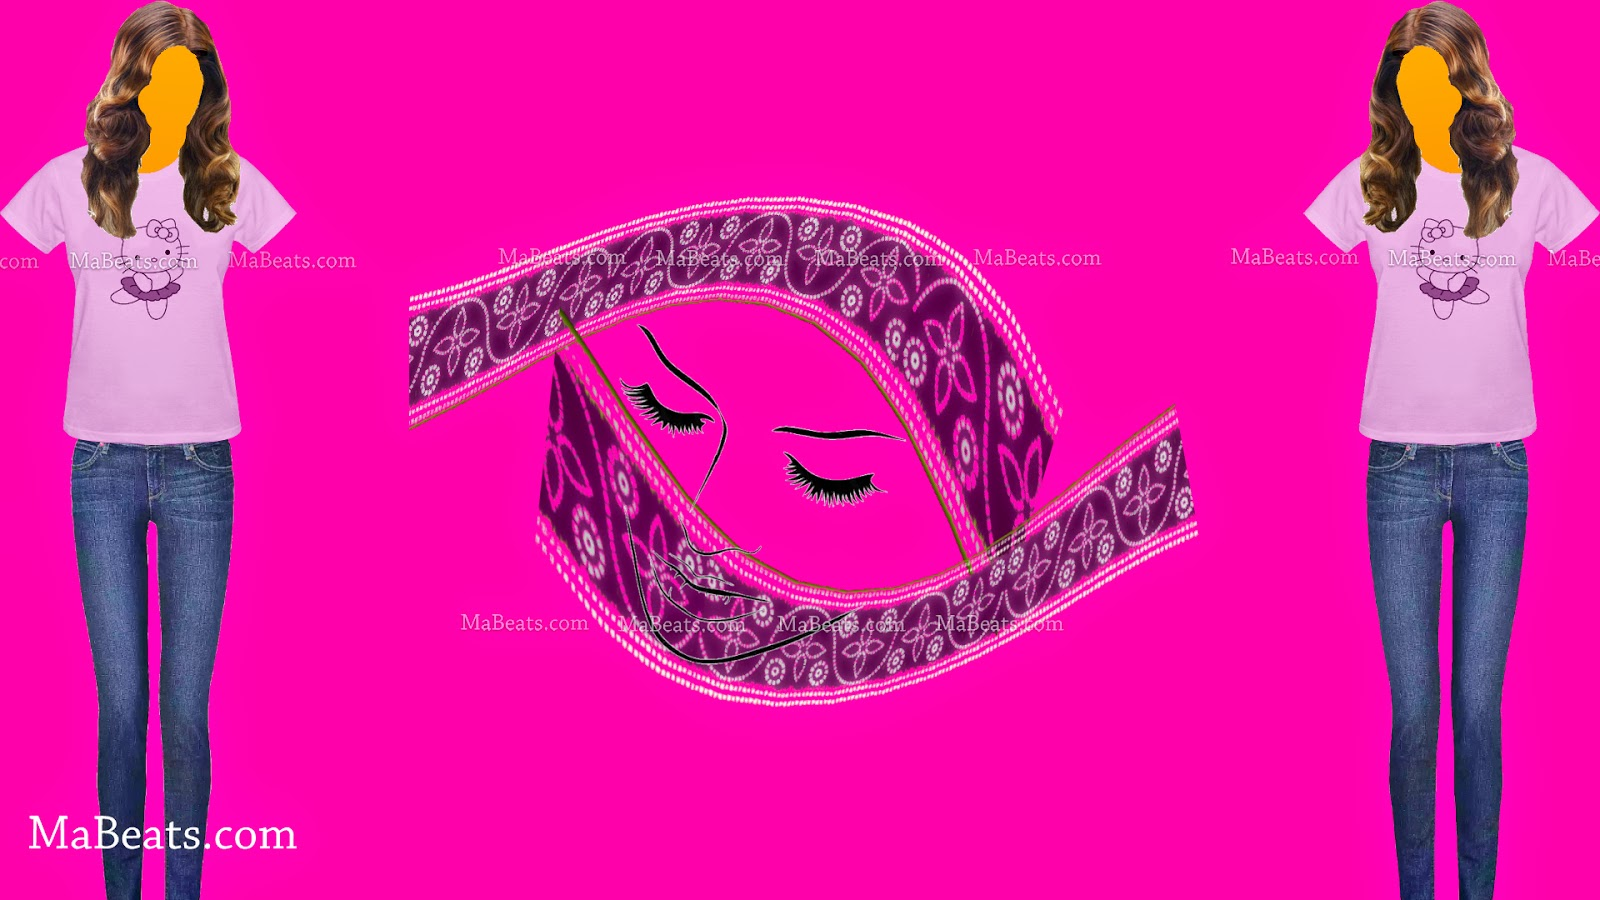 What if all women wear a fully covered dress like burka, pink background, women wearing t-shirt and jeans